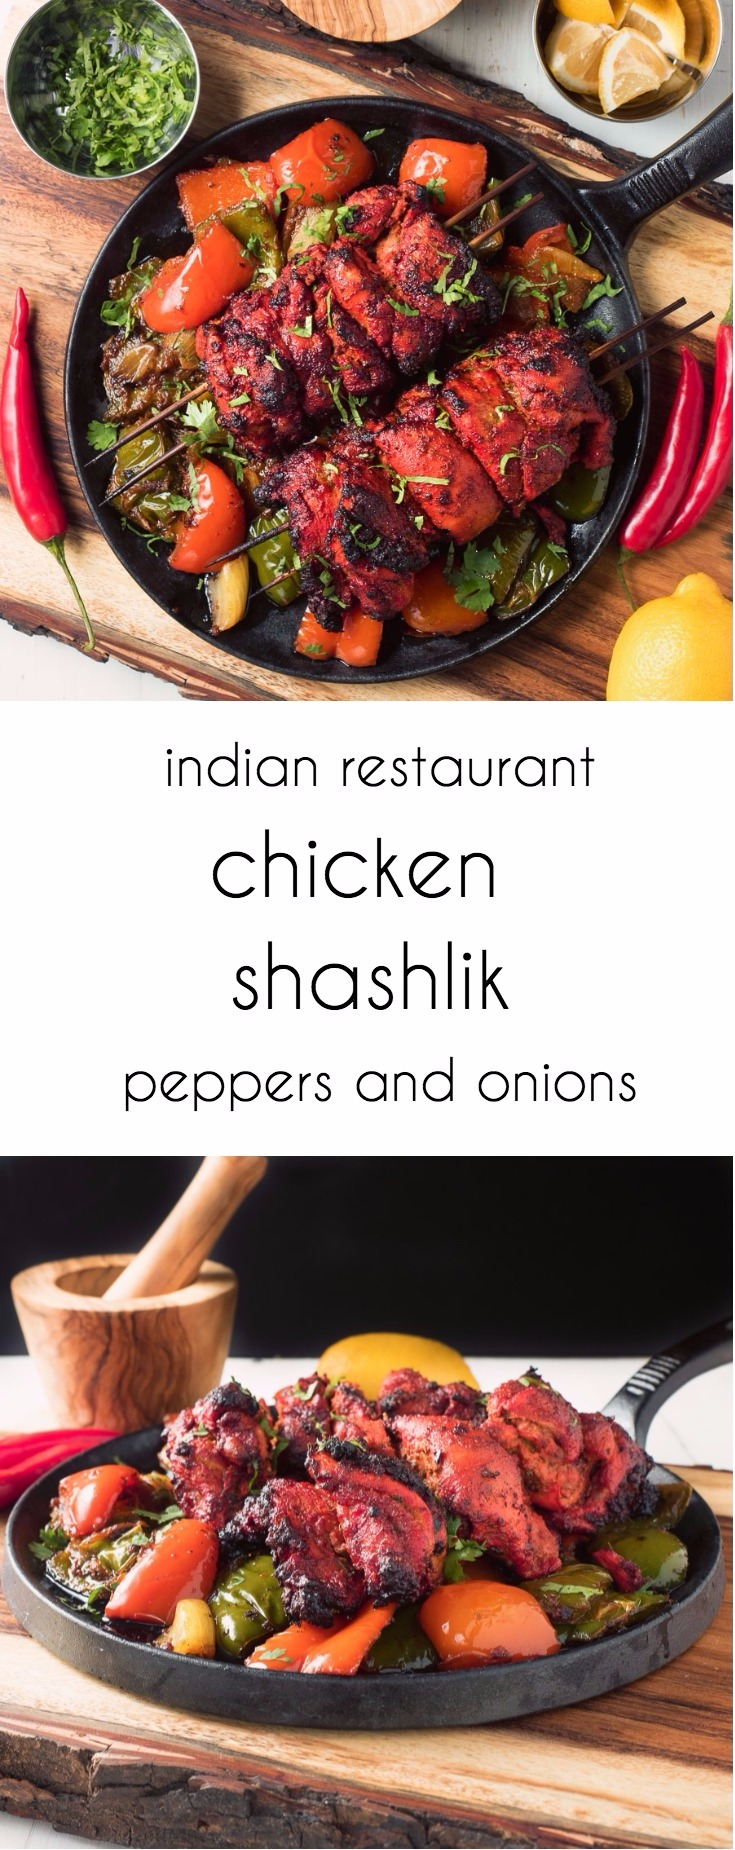 Restaurant style chicken shashlik explodes with Indian flavours.